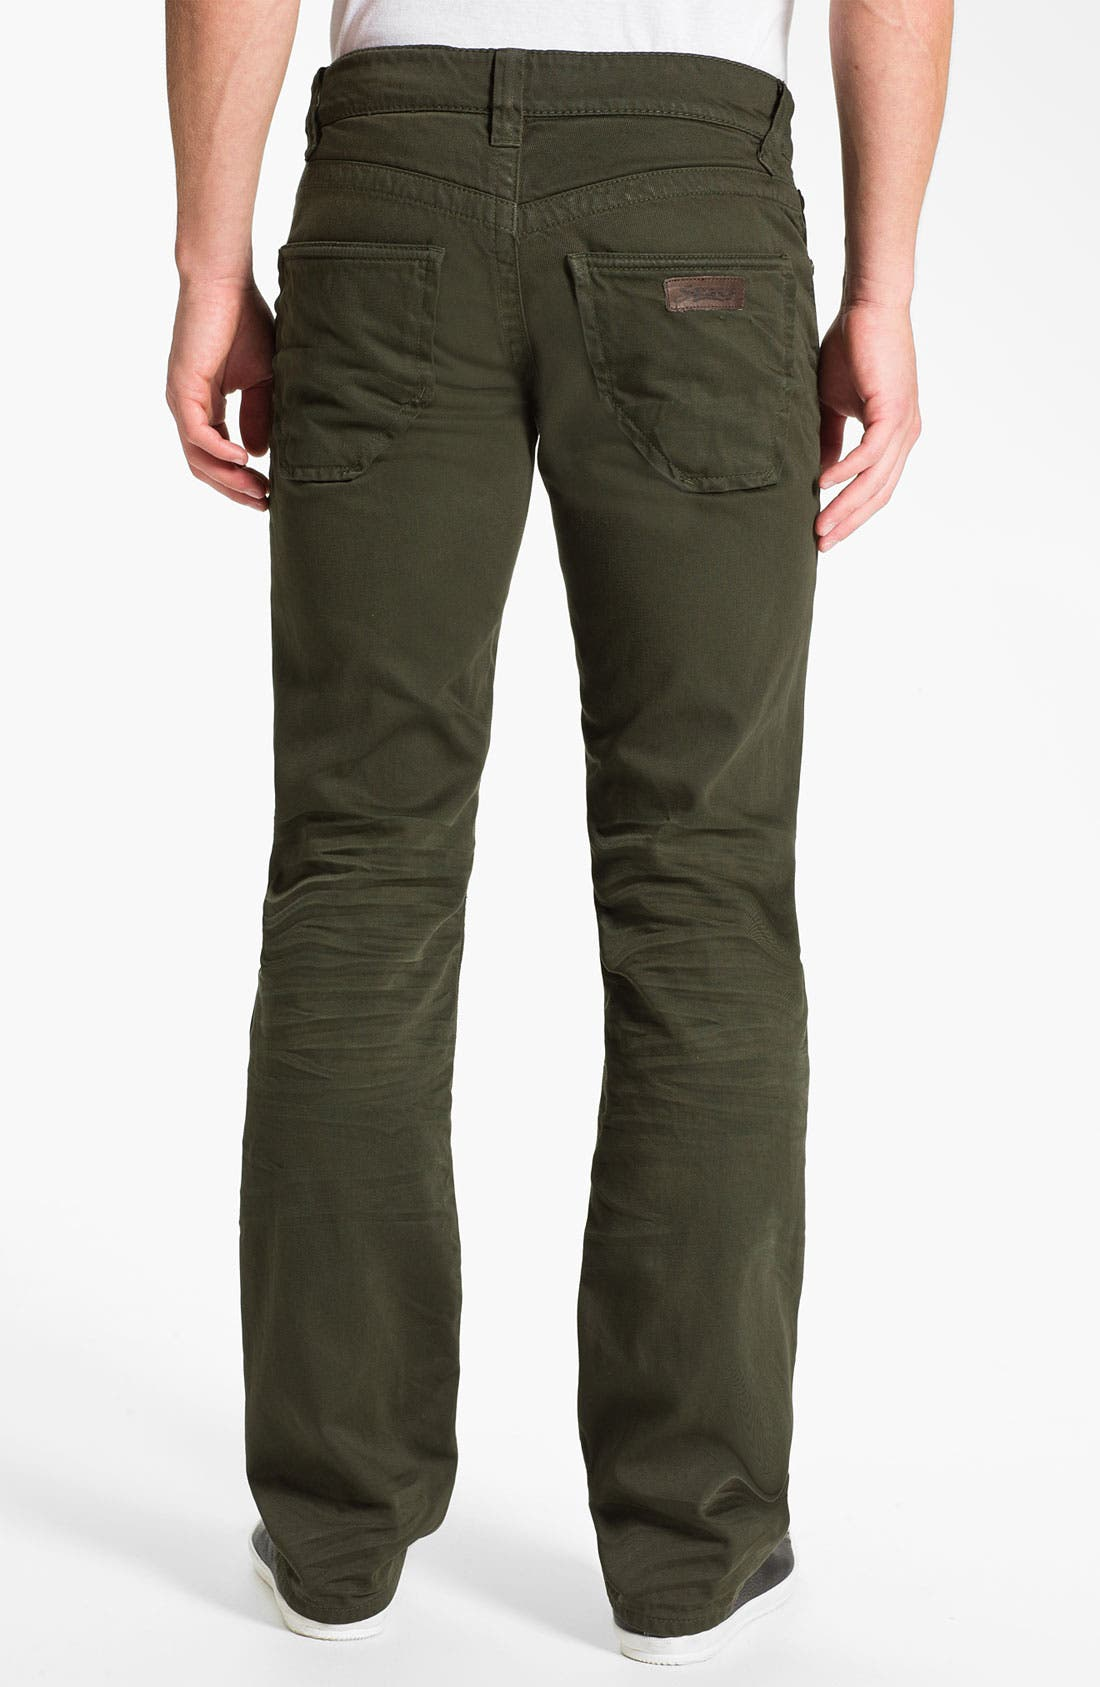 Alternate Image 1 Selected - Stitch's Jeans Twill Straight Leg Pants